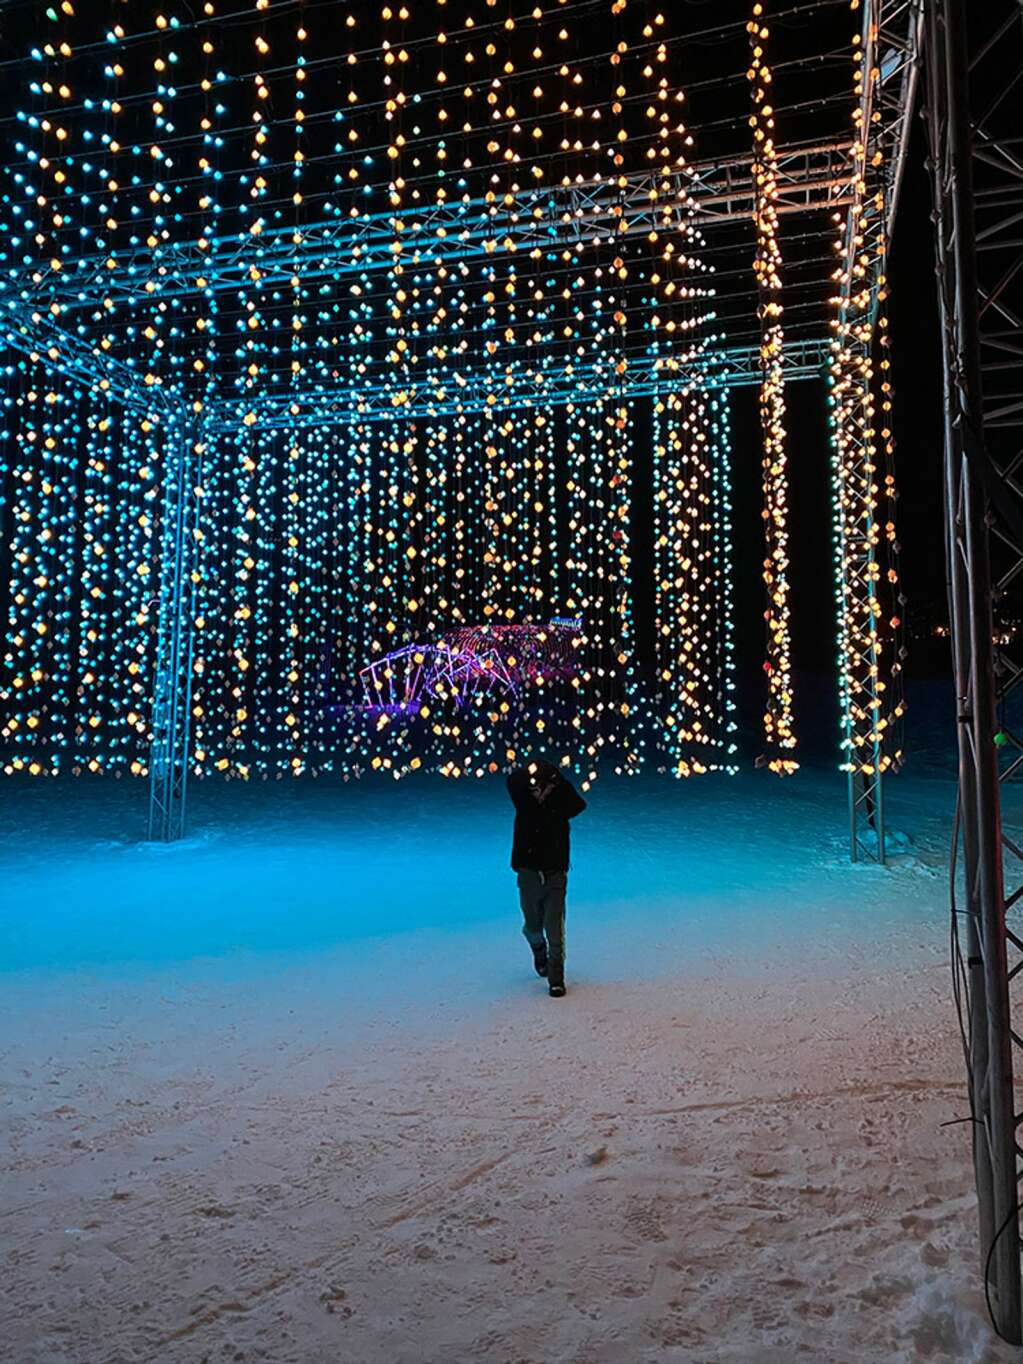 Charles Remington relishing the chance to explore Snowmass Luminescence, an interactive art and light display.